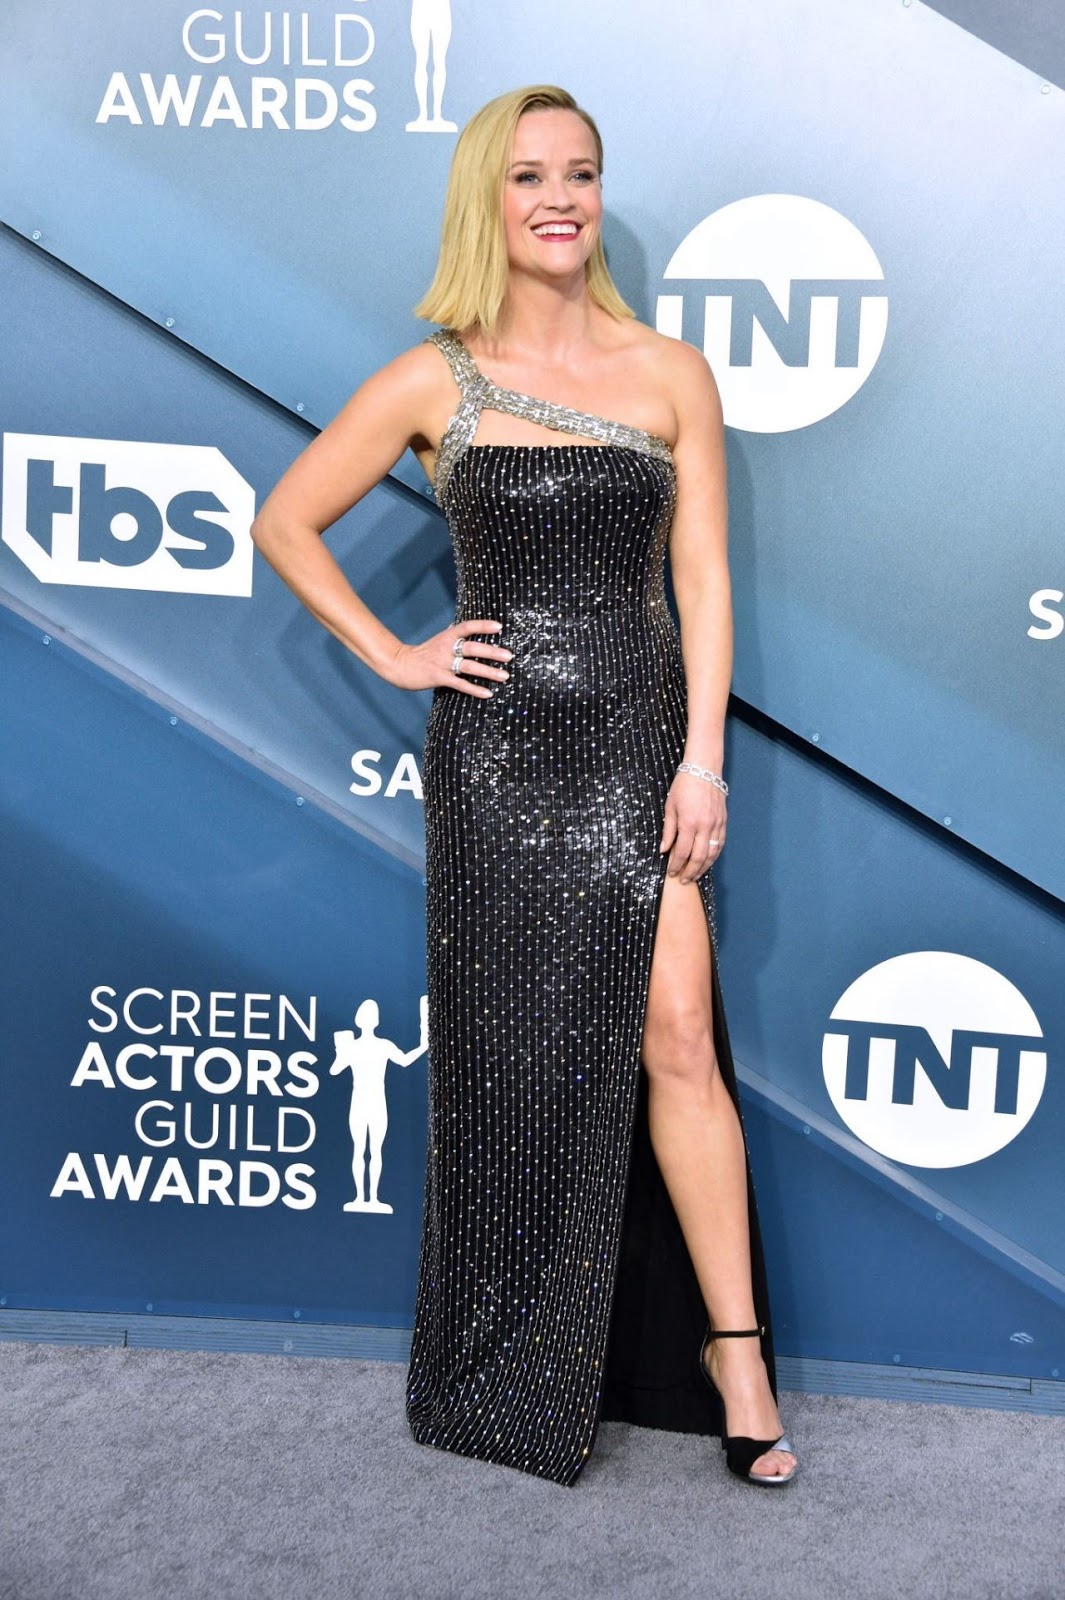 Reese Witherspoon puts on a leggy display in dazzling shimmery black gown as she represents Big Little Lies at SAG Awards